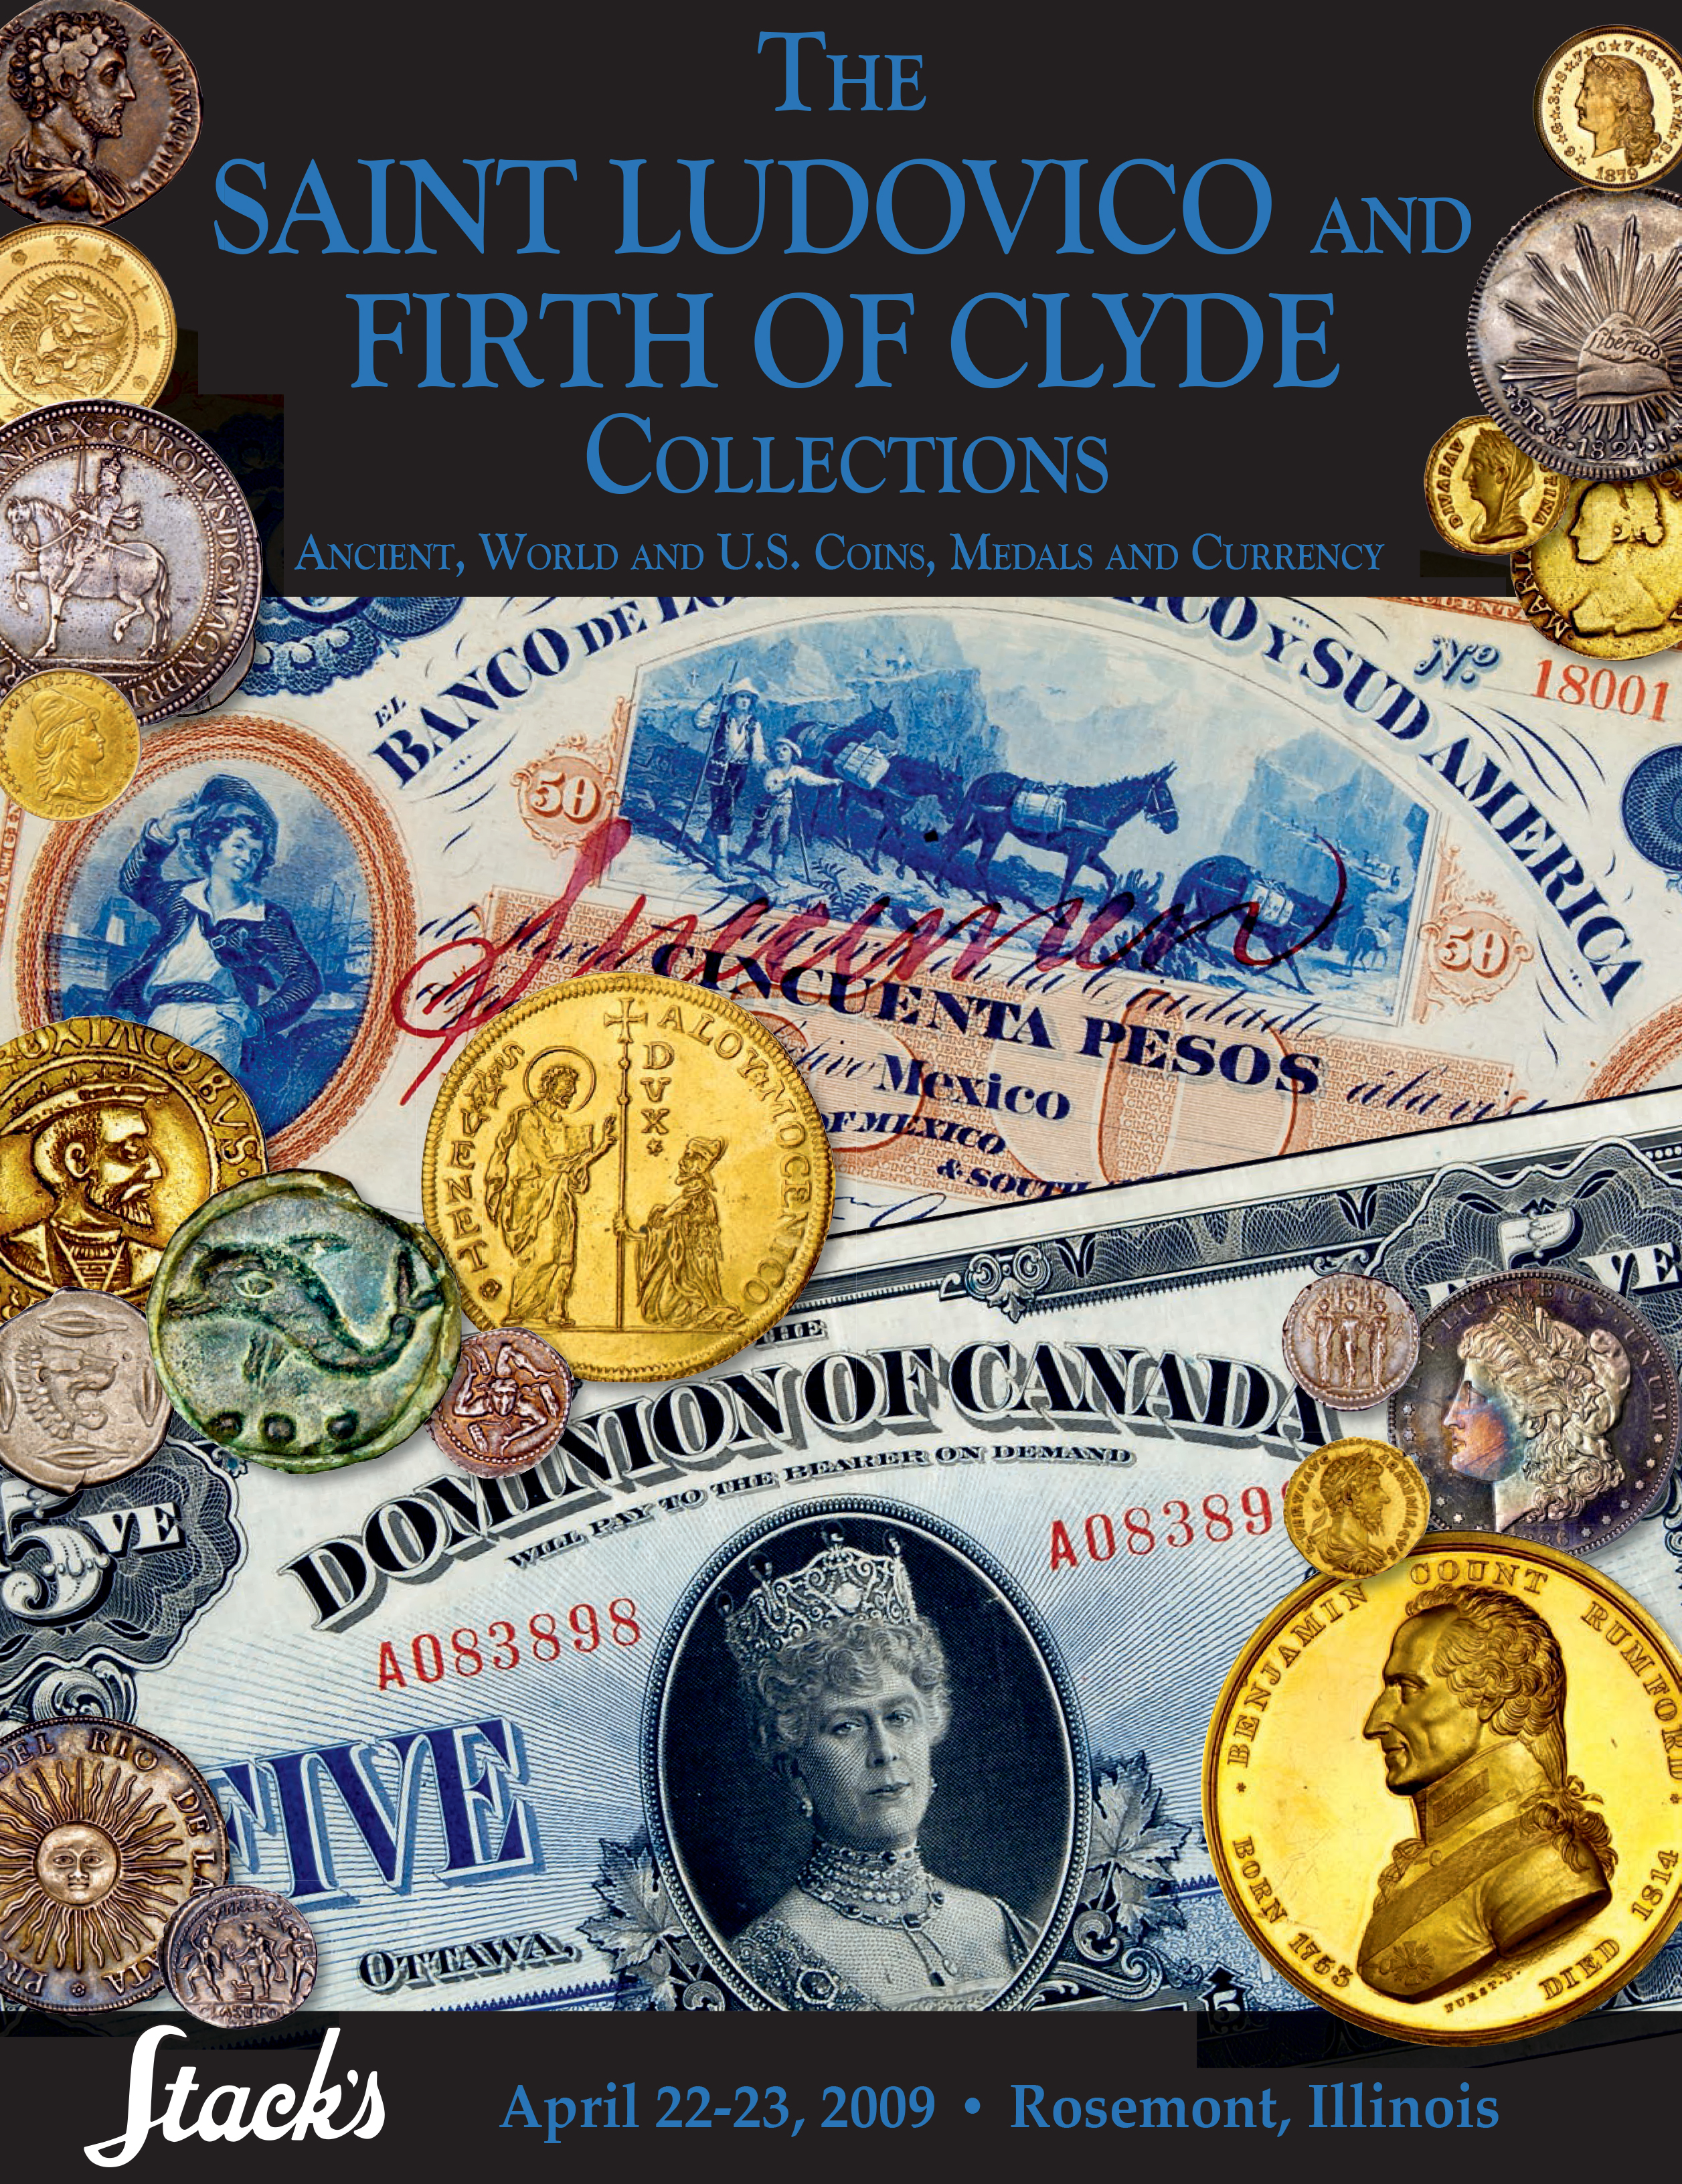 The Saint Ludovico and Firth of Clyde Collections Ancient, World and U.S. Coins, Medals and Currency